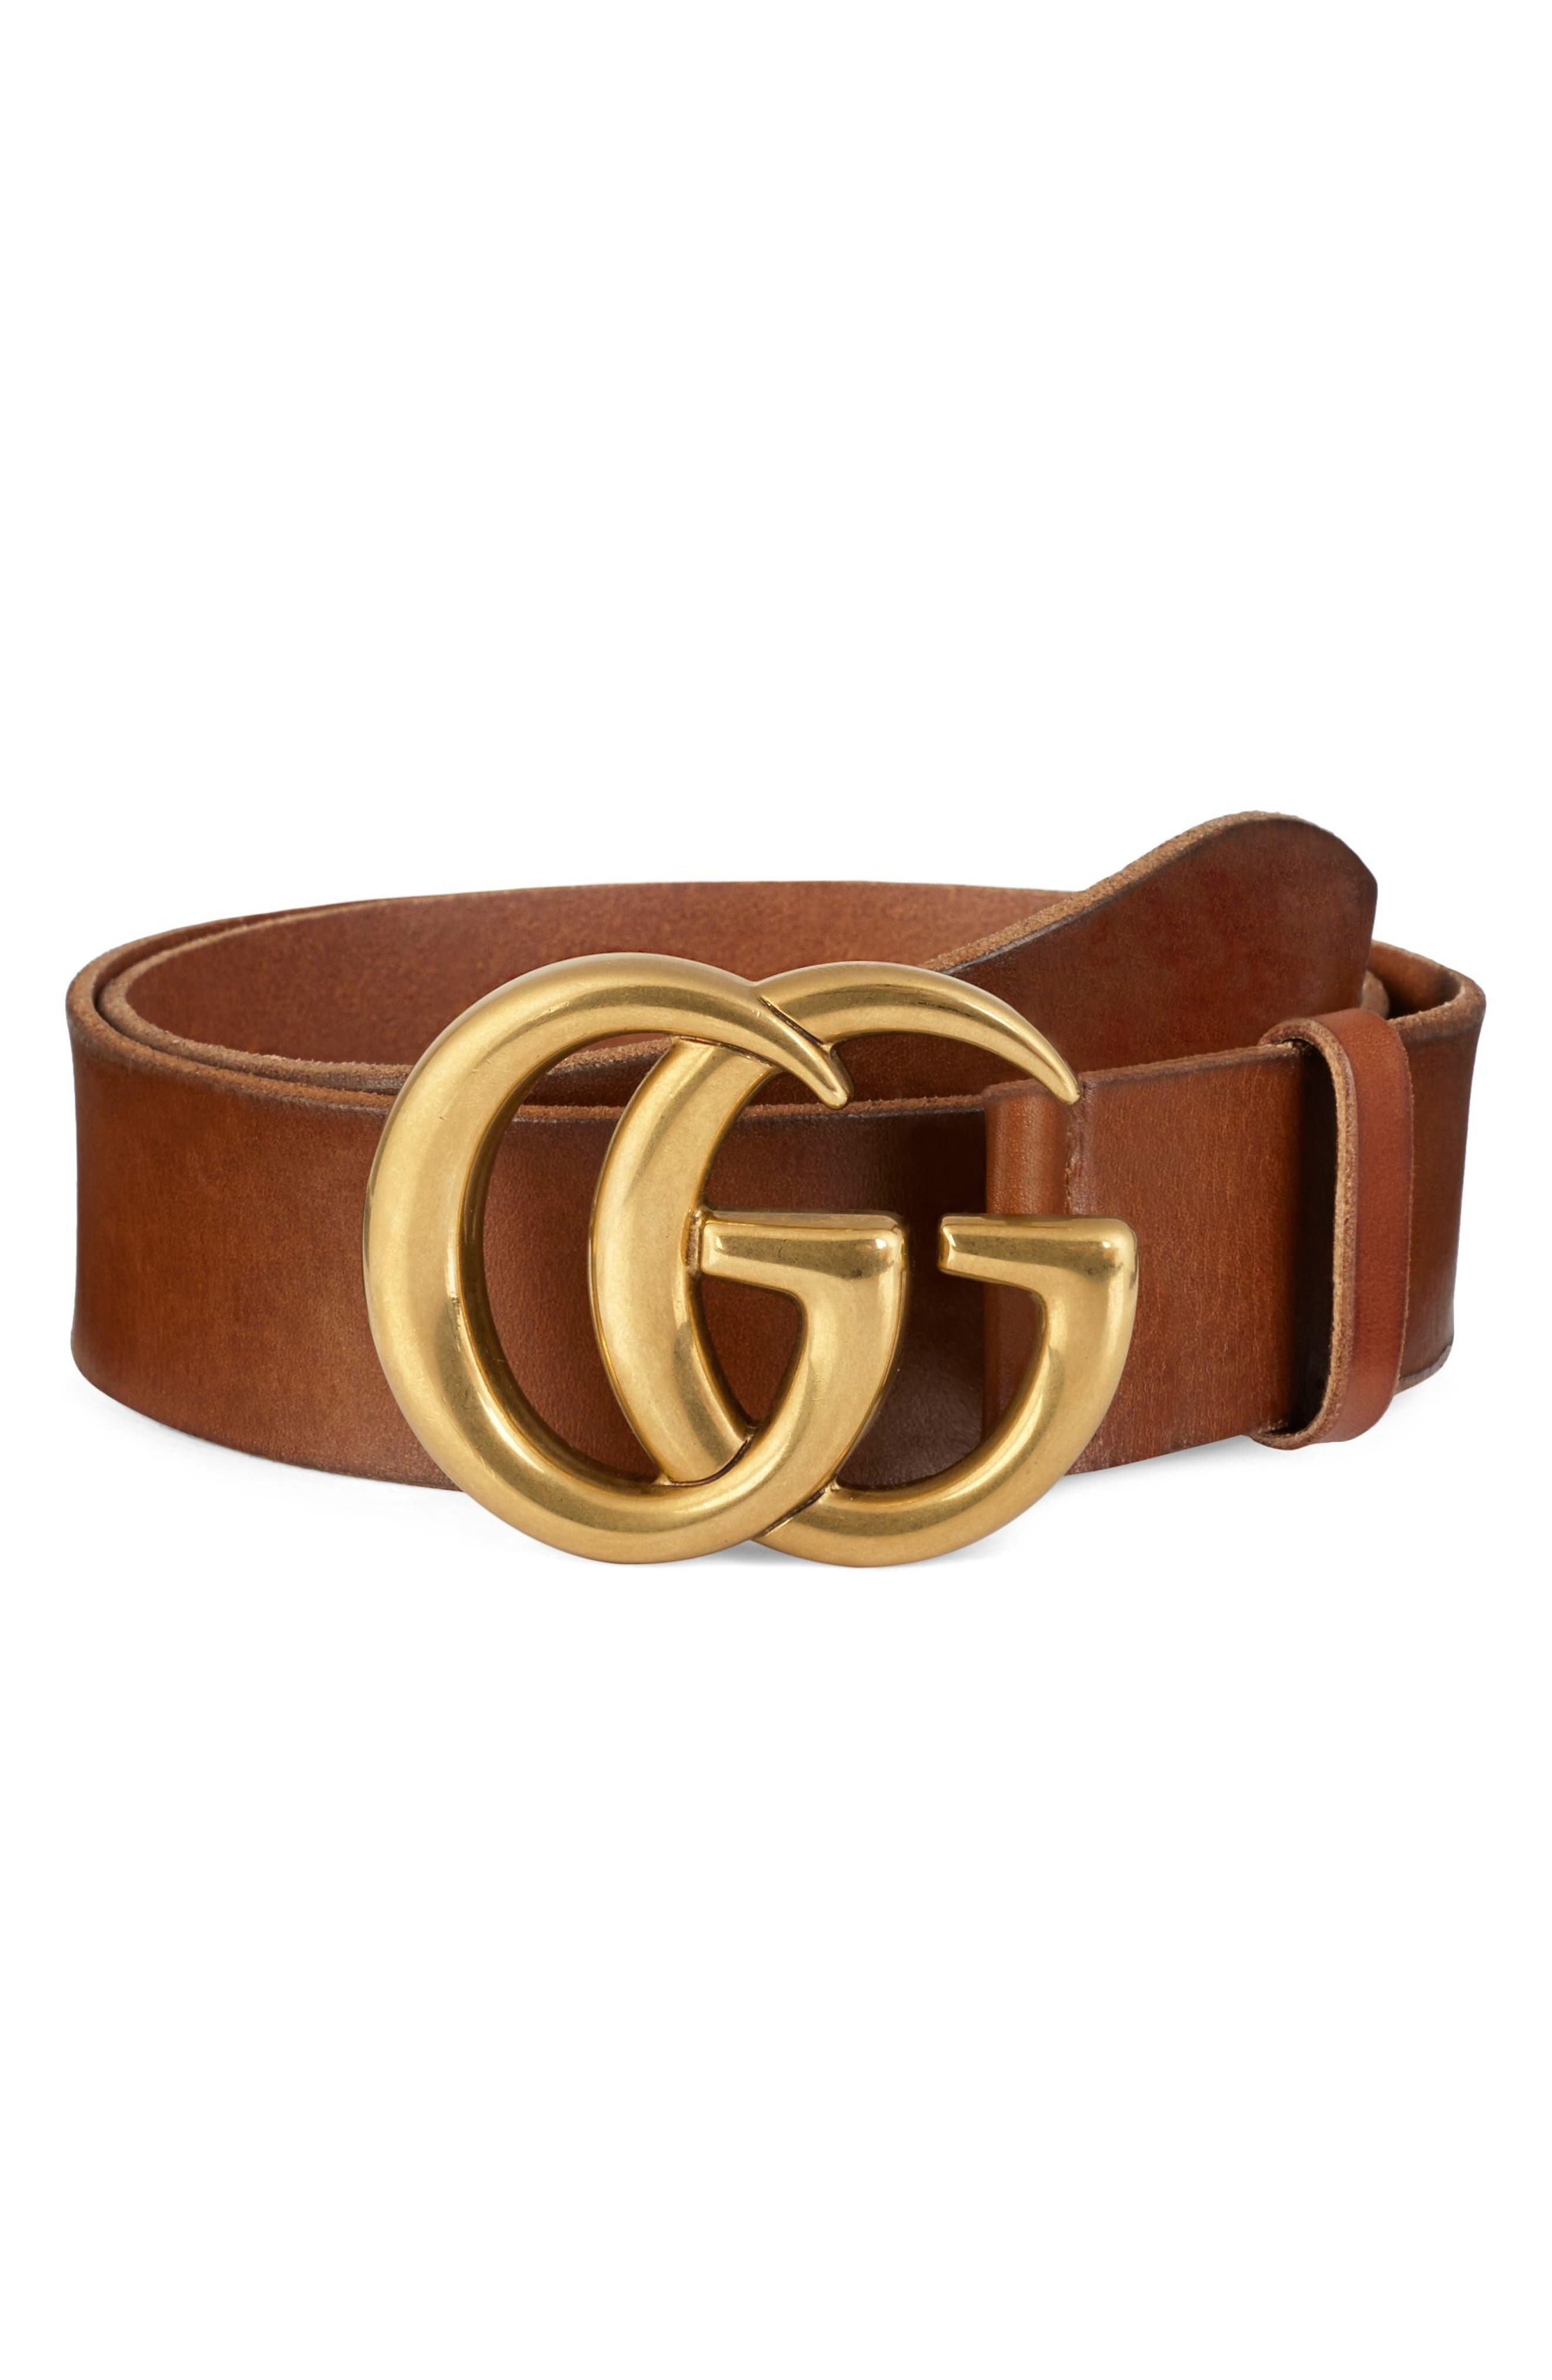 GUCCI, Running Gold Leather Belt, Main thumbnail 1, color, BROWN